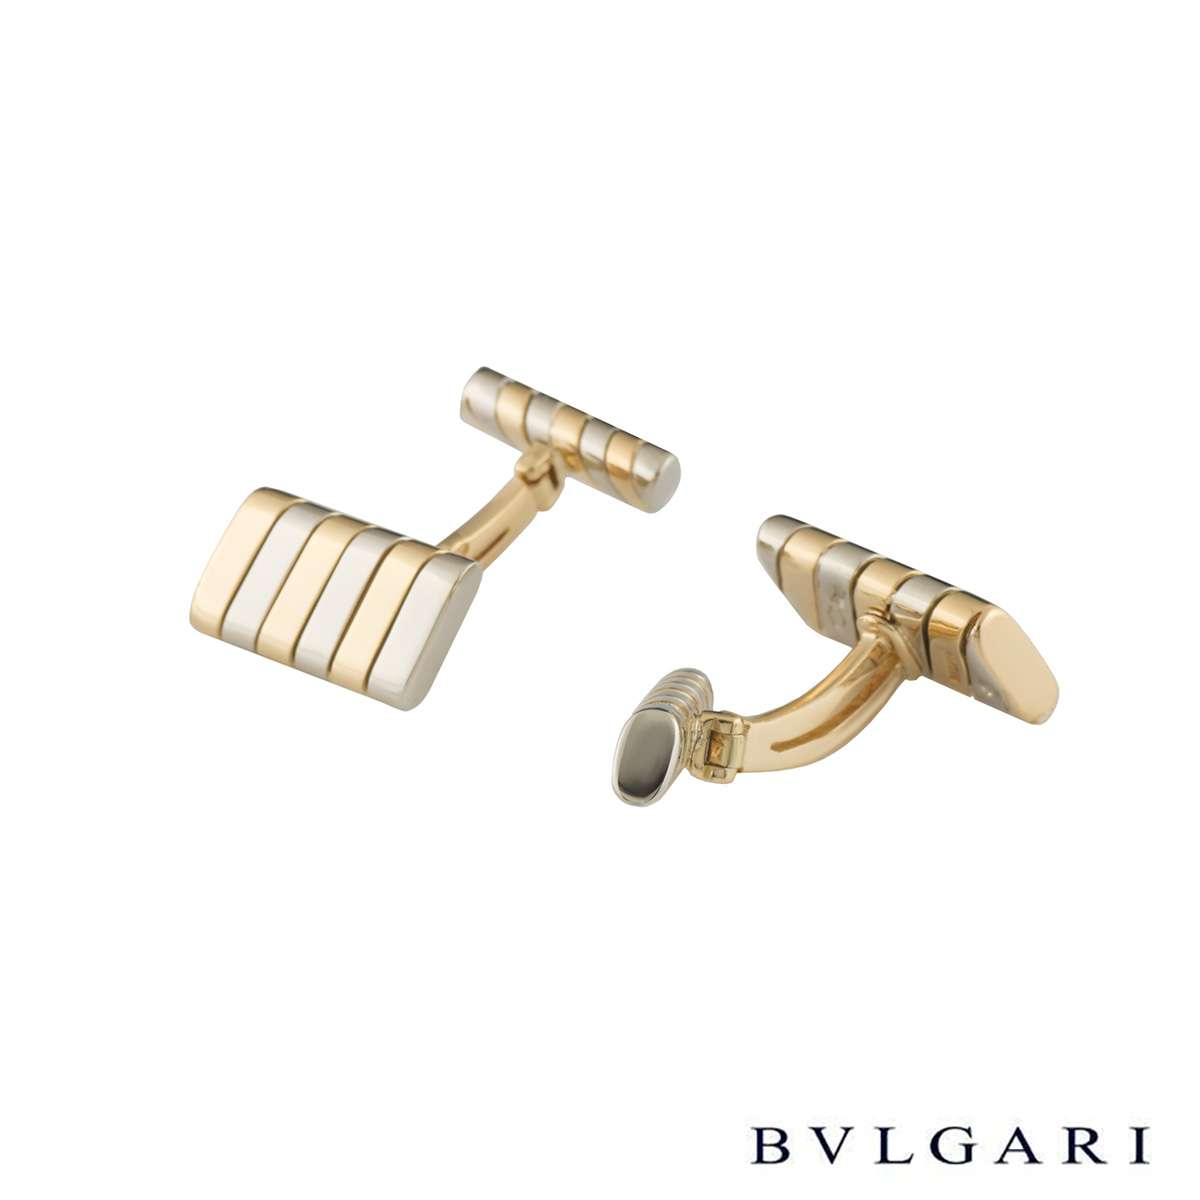 Bvlgari Yellow and White Gold Tubogas Cufflinks